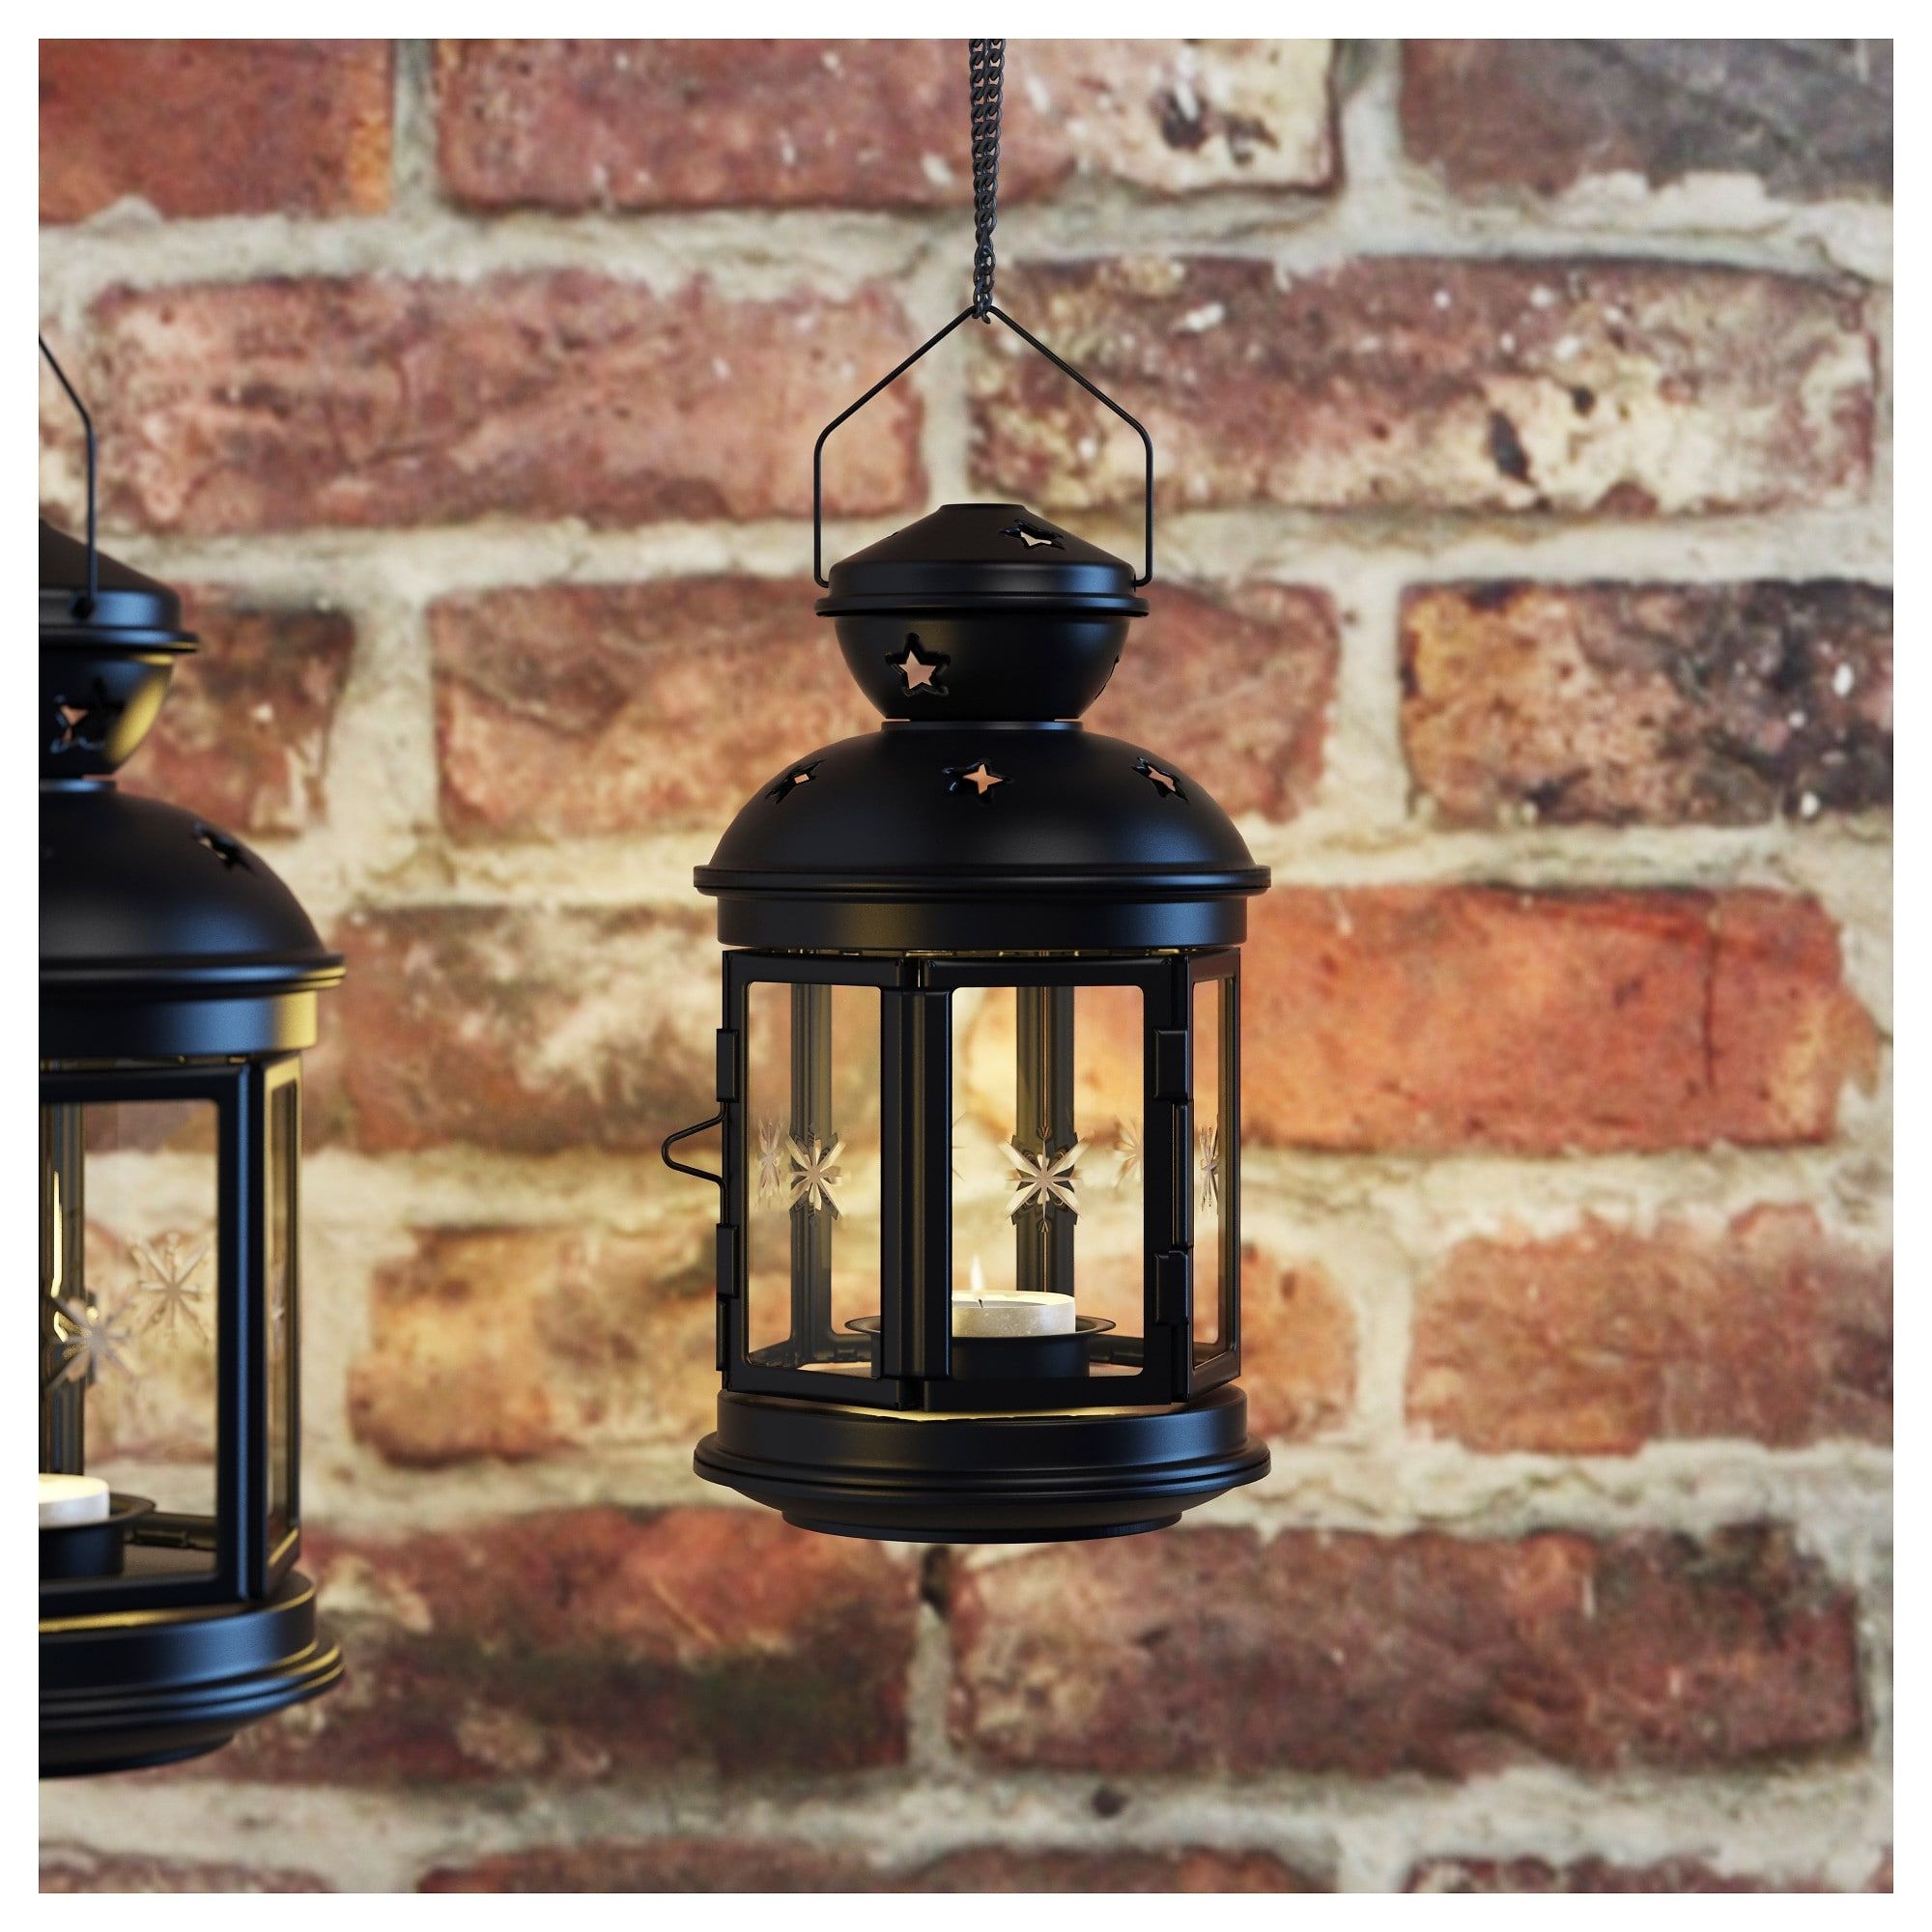 Rotera Lantern For Tealight – Ikea Intended For Fashionable Ikea Outdoor Lanterns (View 18 of 20)